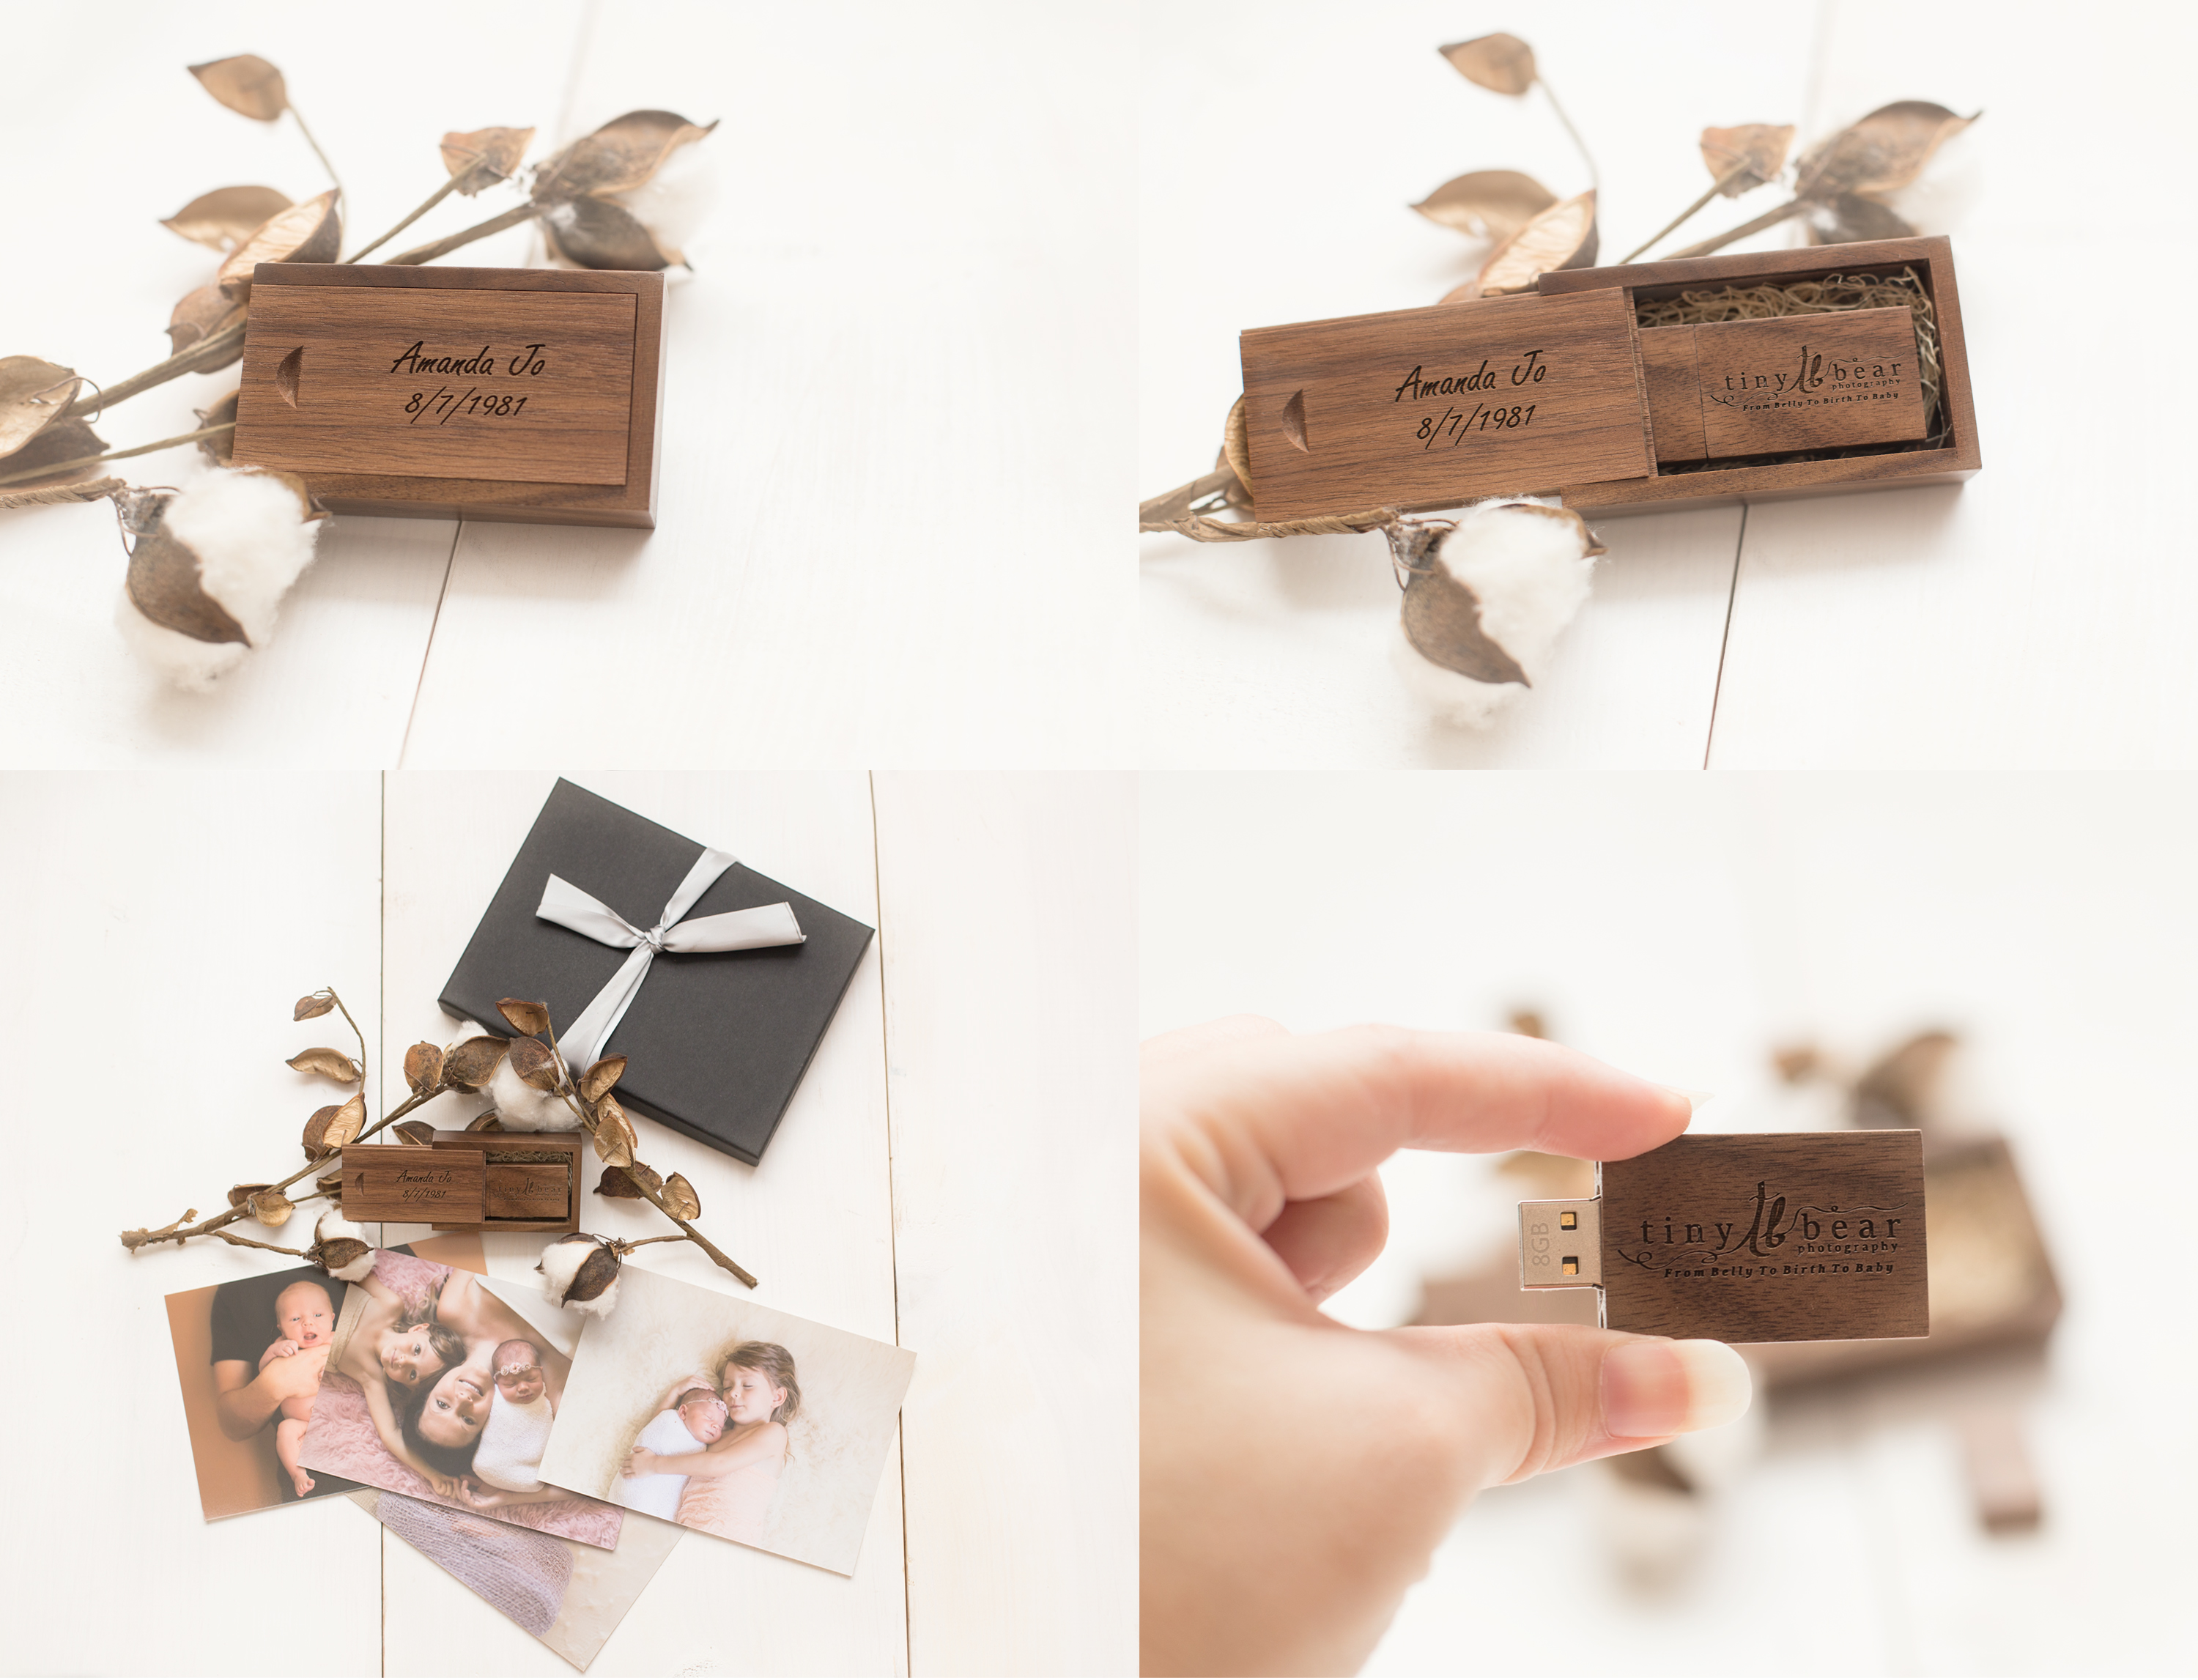 All photobox together with usb